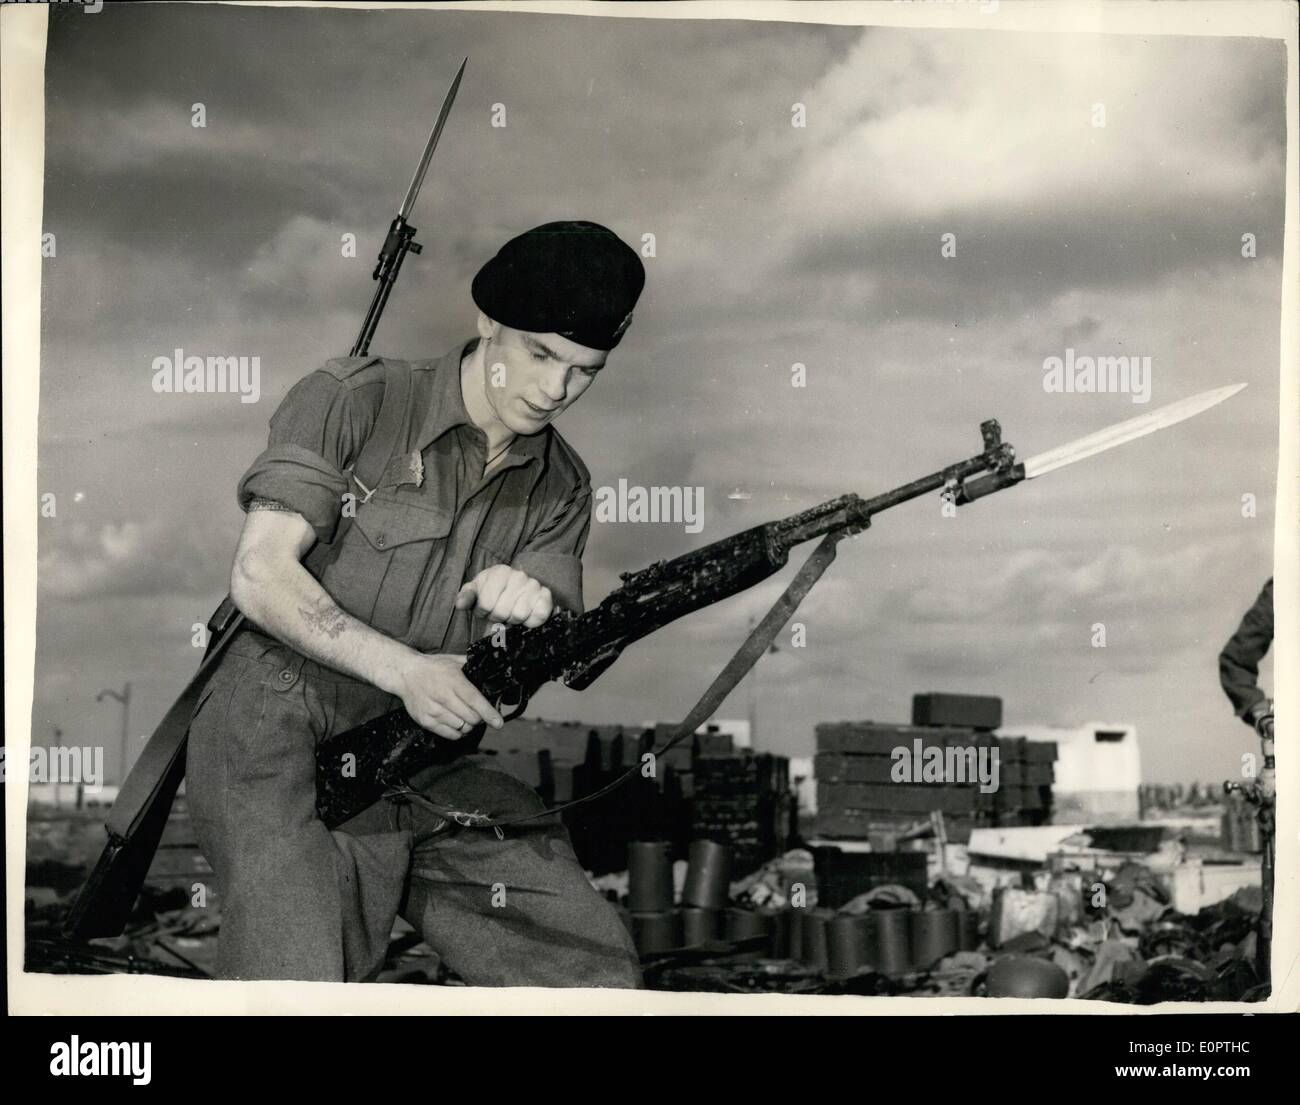 pthc russian 12, 1956 - Latest Scenes From Port Said Captured Russian 270 Rifle; Photo Shows Roger Rainbird from Hornsey, London look's